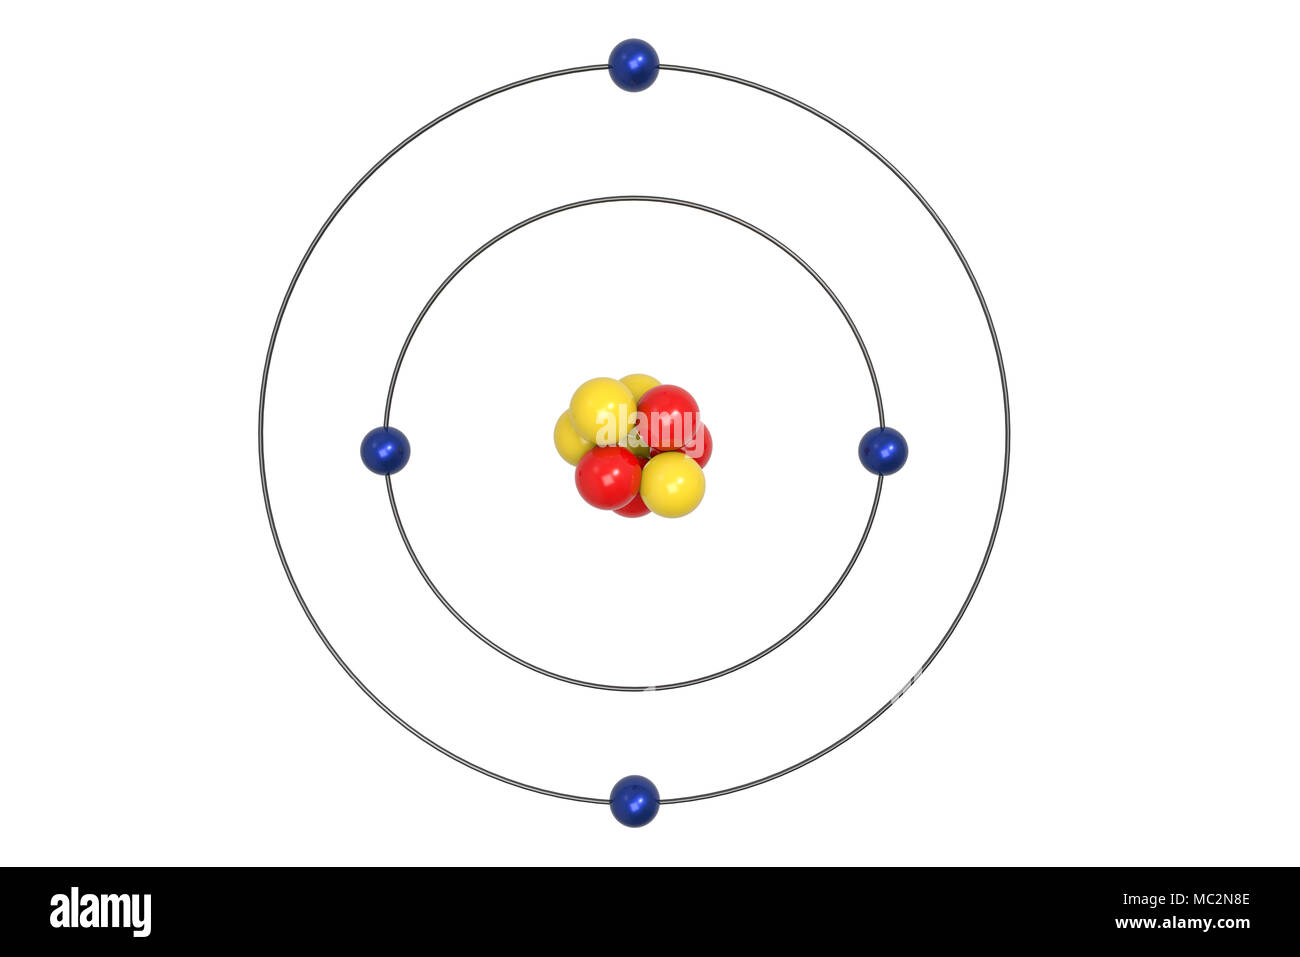 hight resolution of beryllium atom bohr model with proton neutron and electron 3d illustration stock image